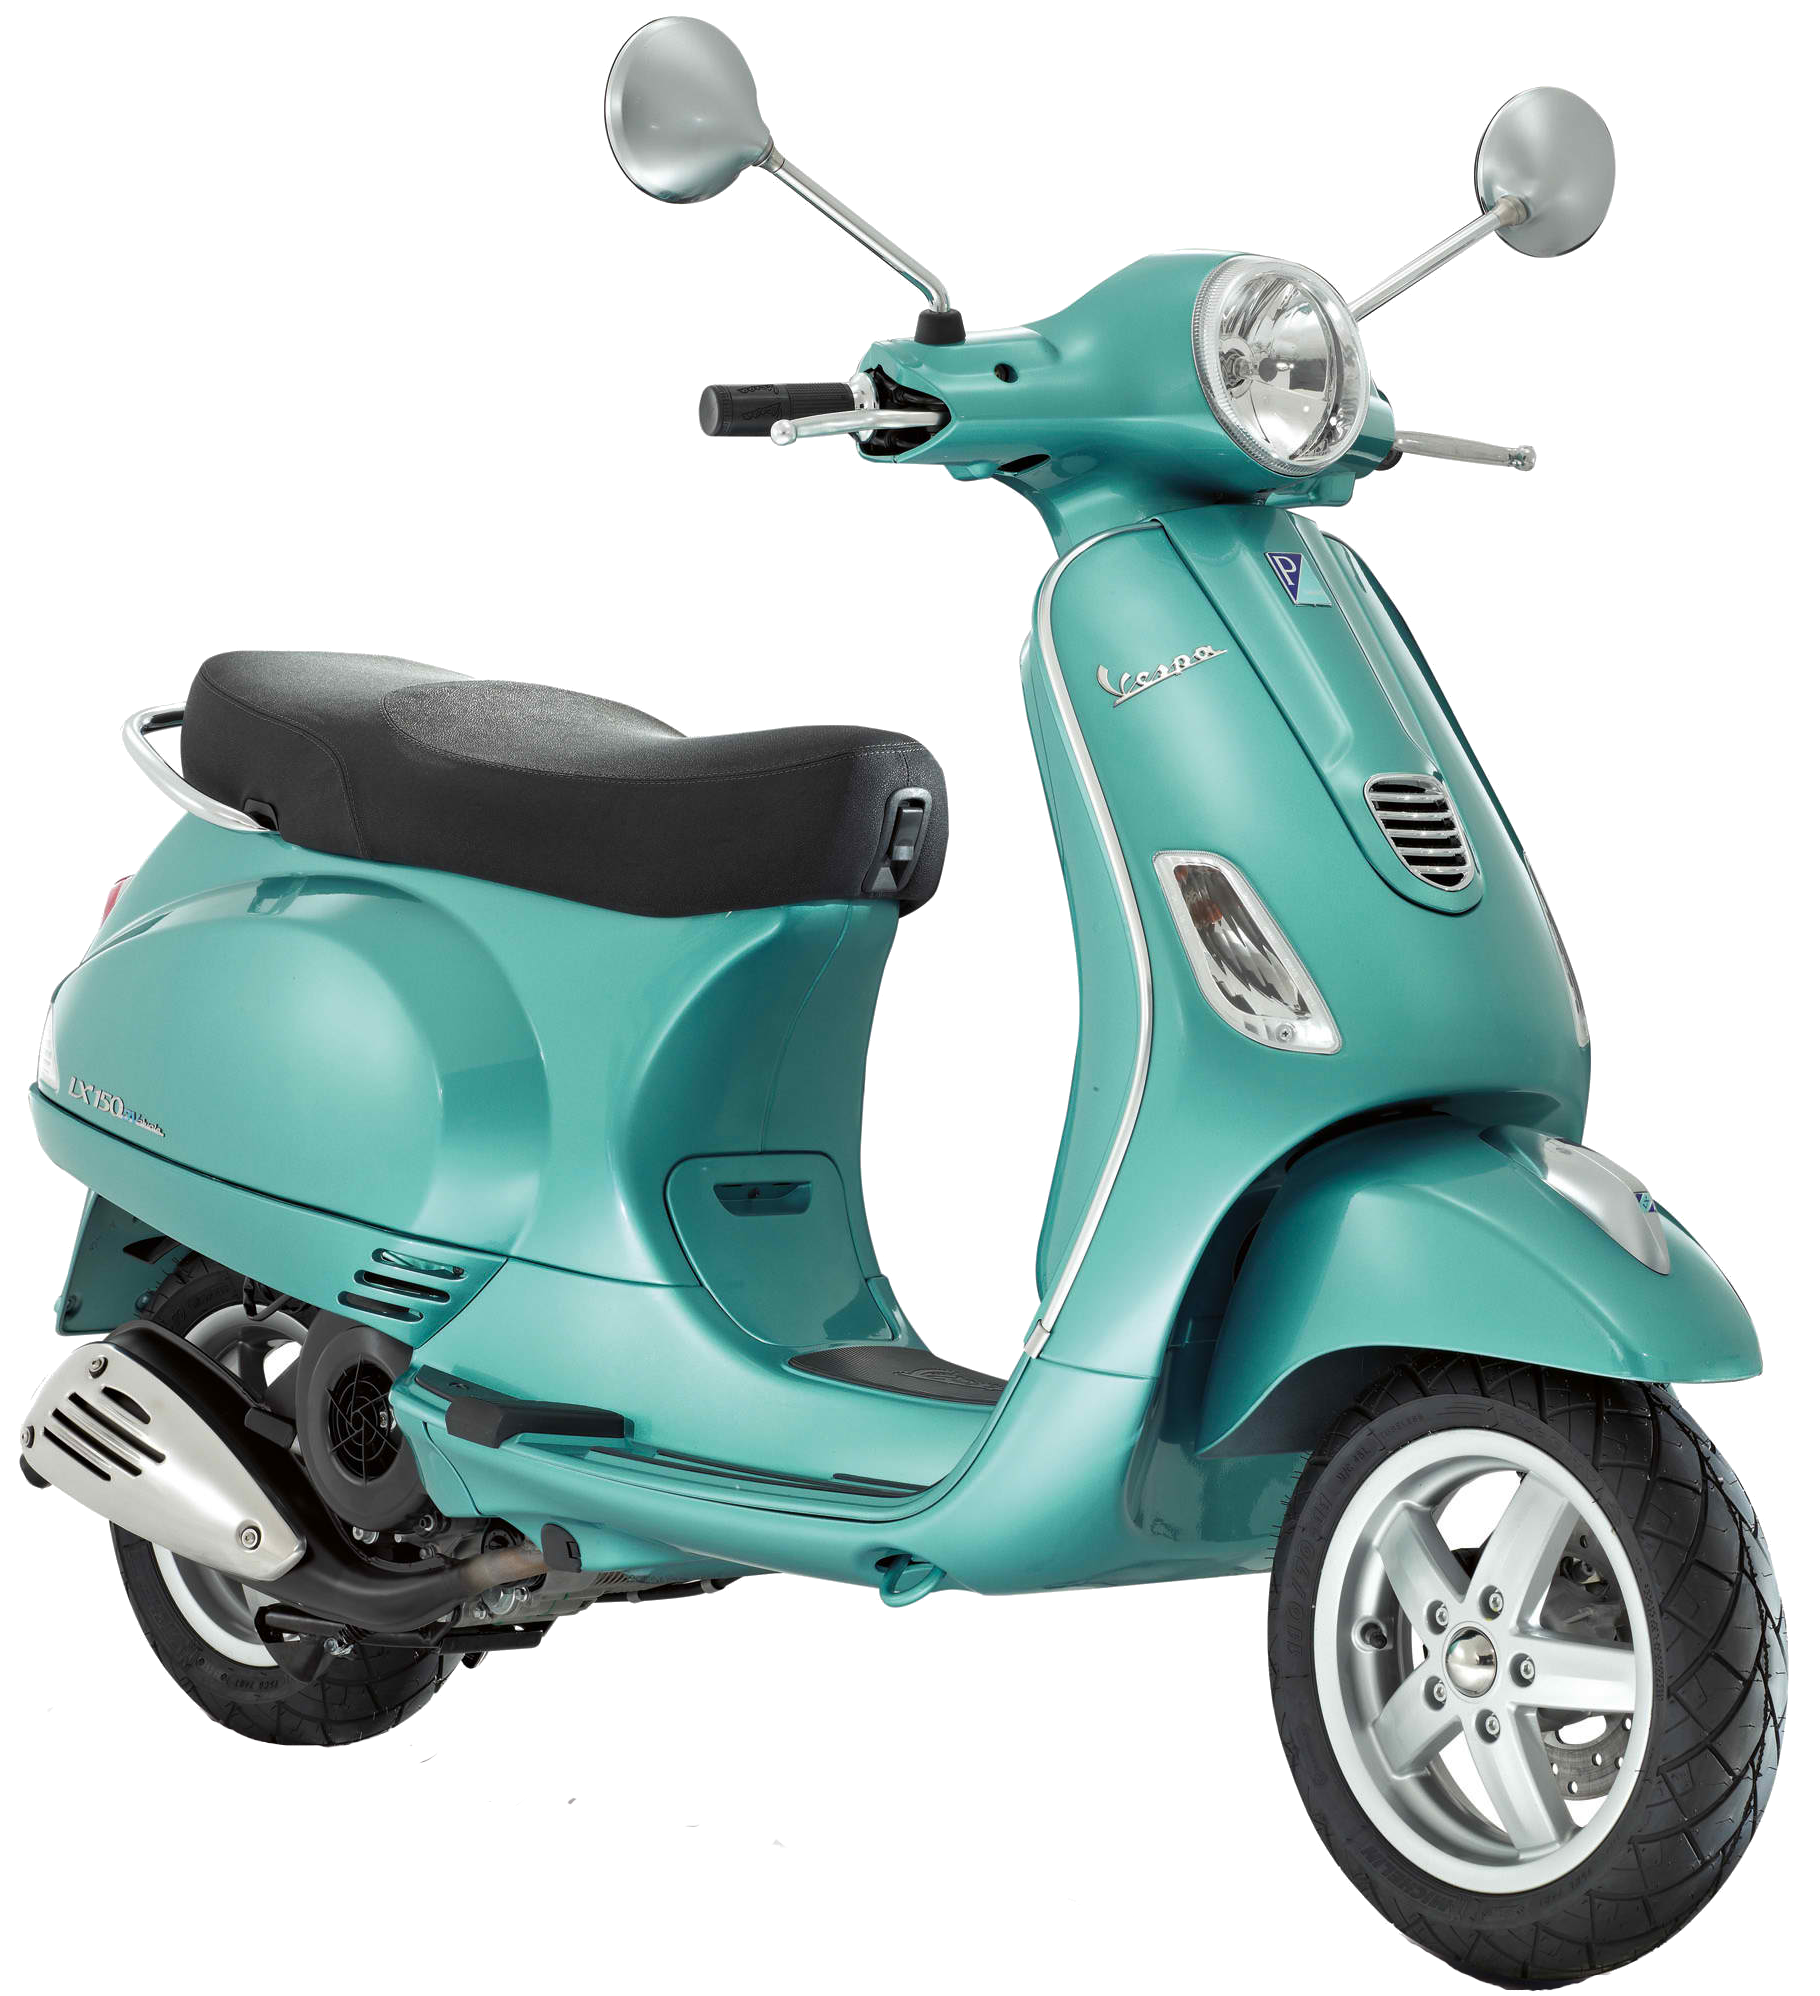 Scooter clipart retro scooter. Png image purepng free